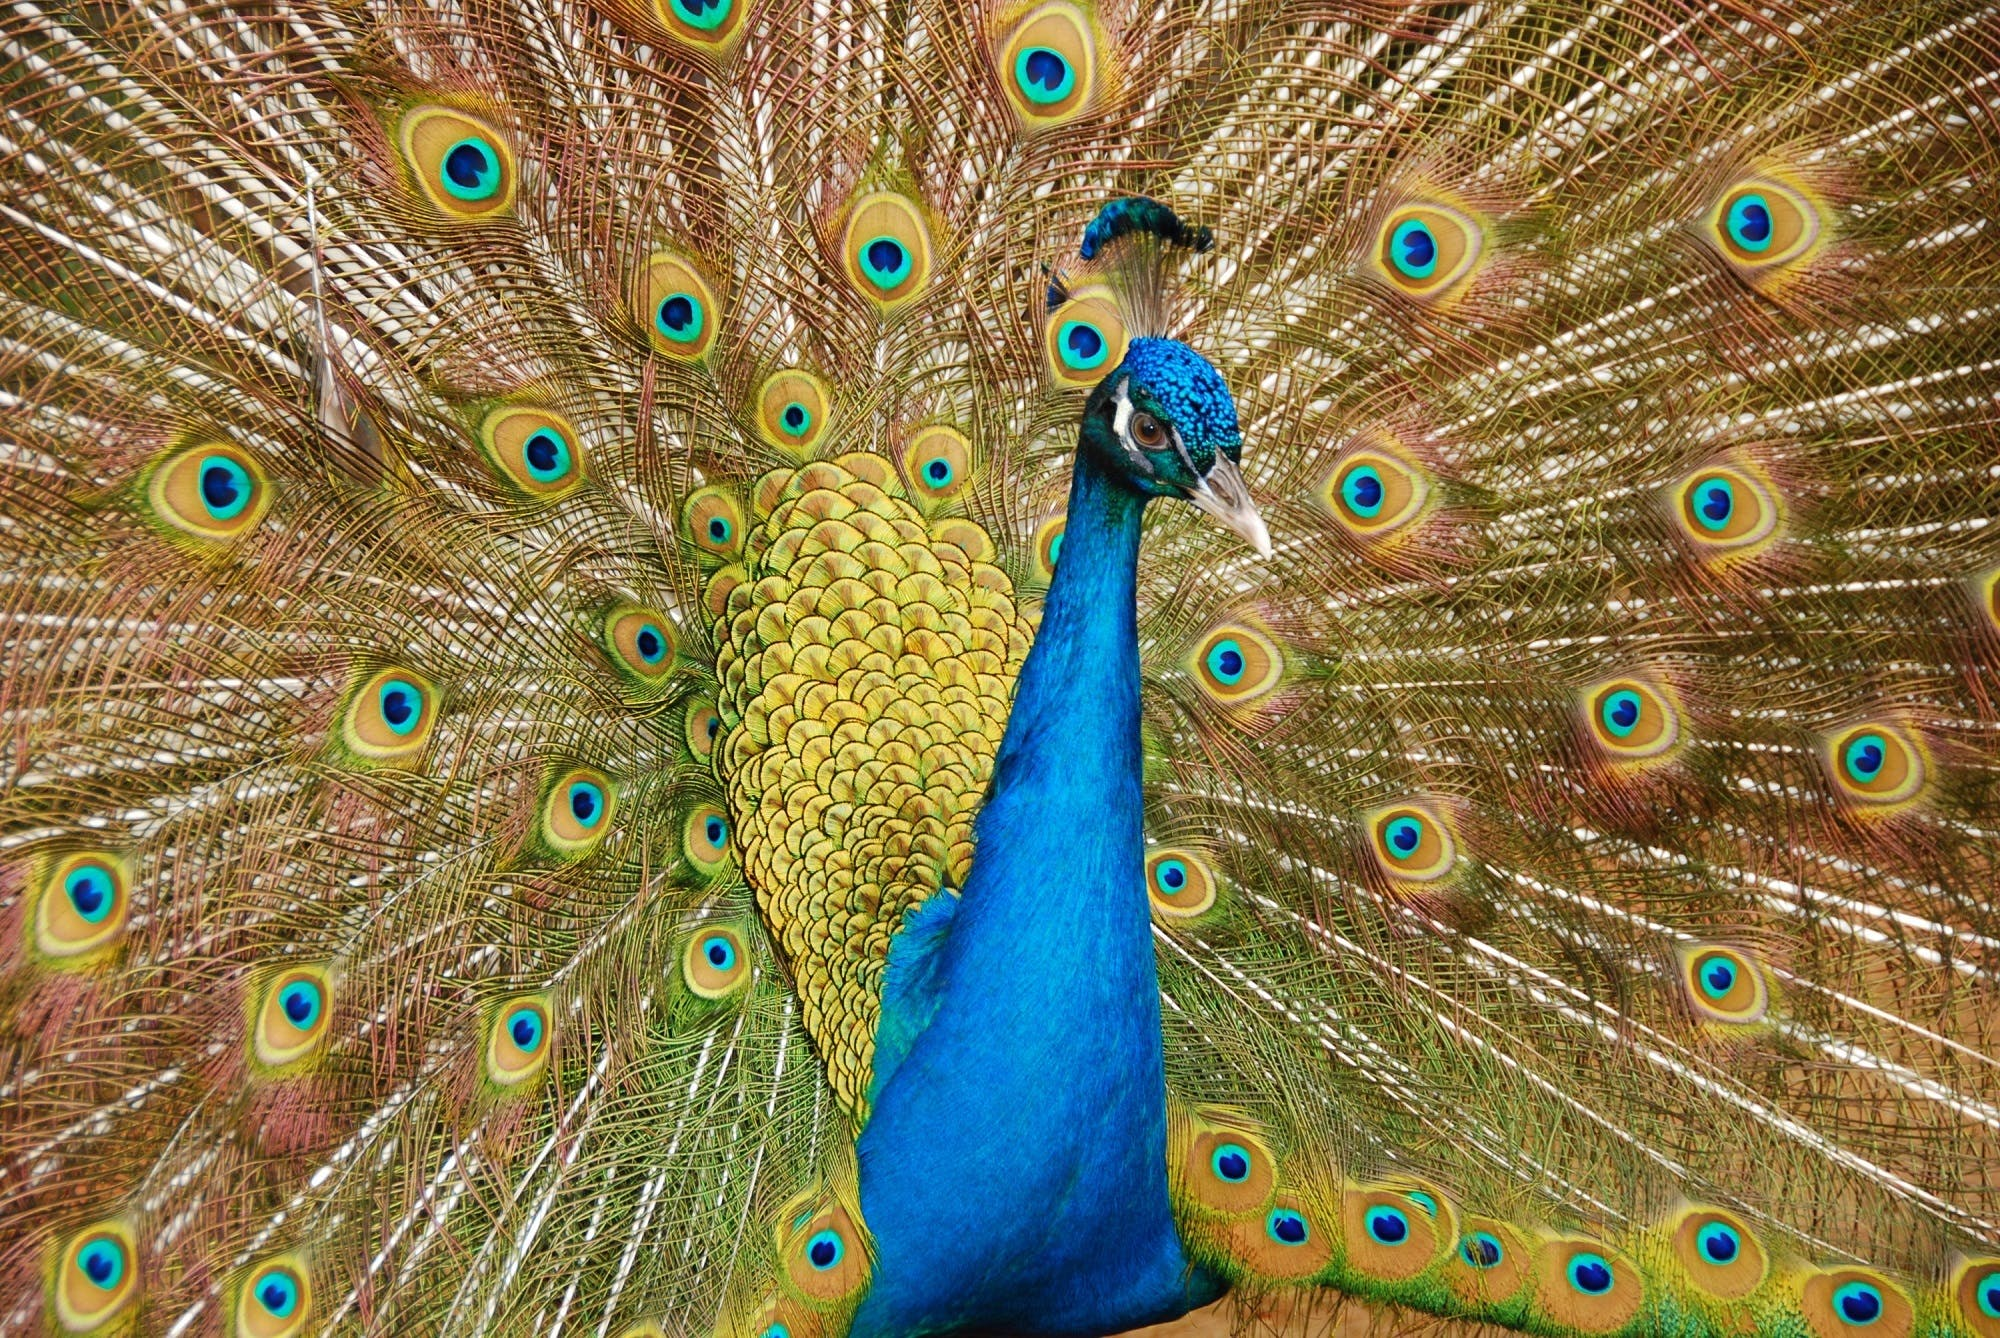 Male Peafowl Spreading Tail